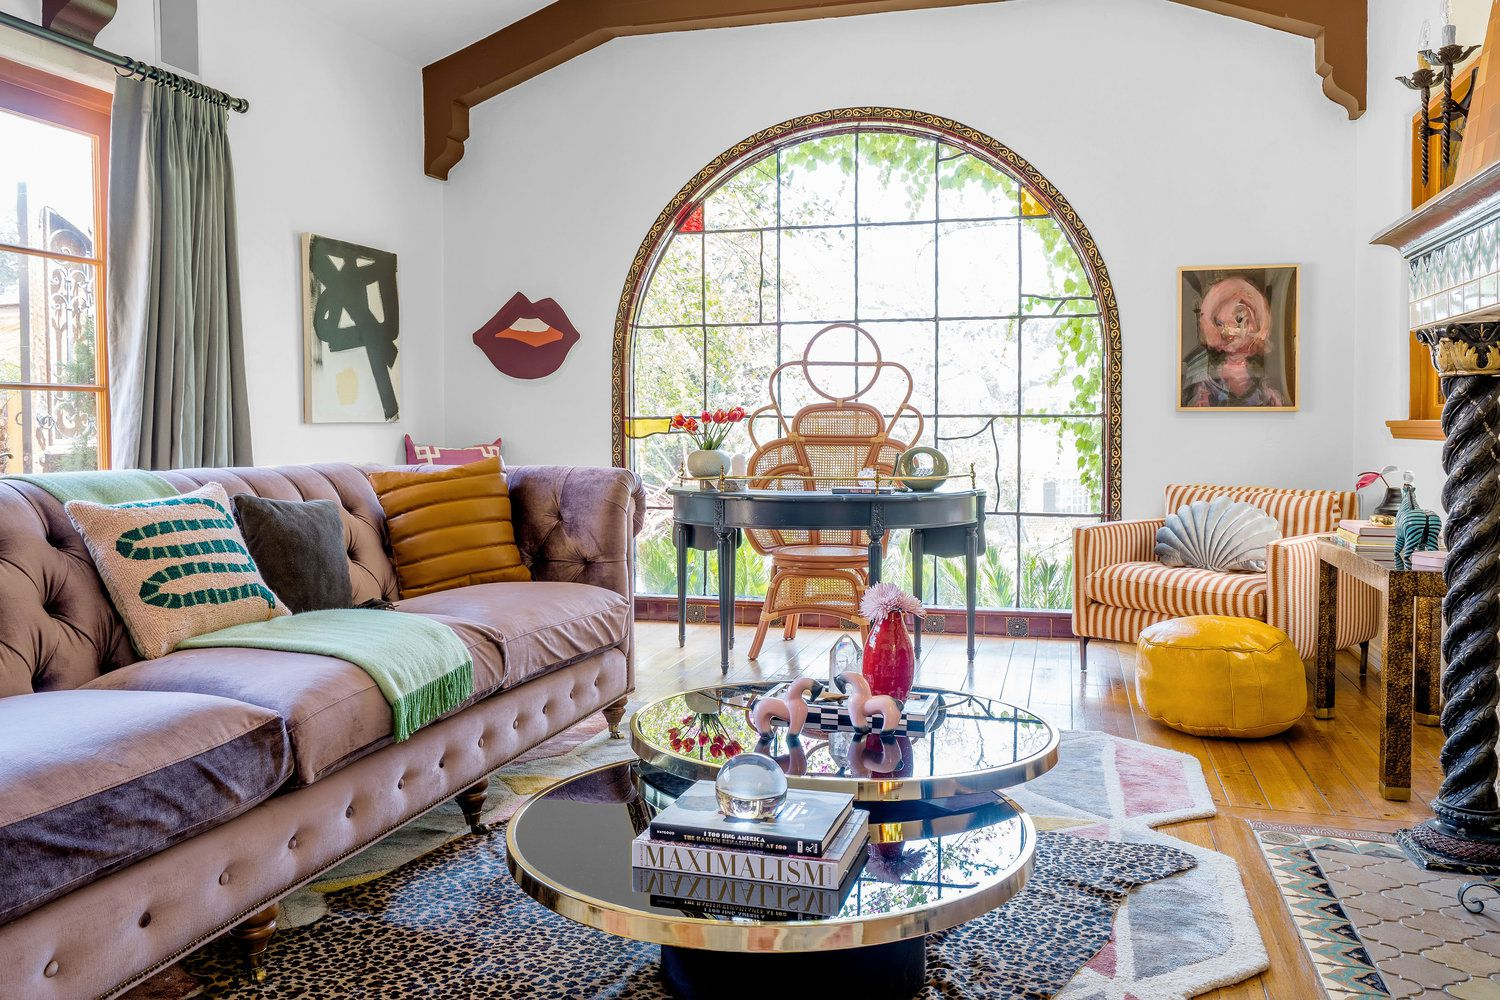 When you have guests for your next dinner party, family gathering or impromptu movie night,. 15 Eclectic Design And Home Decor Ideas